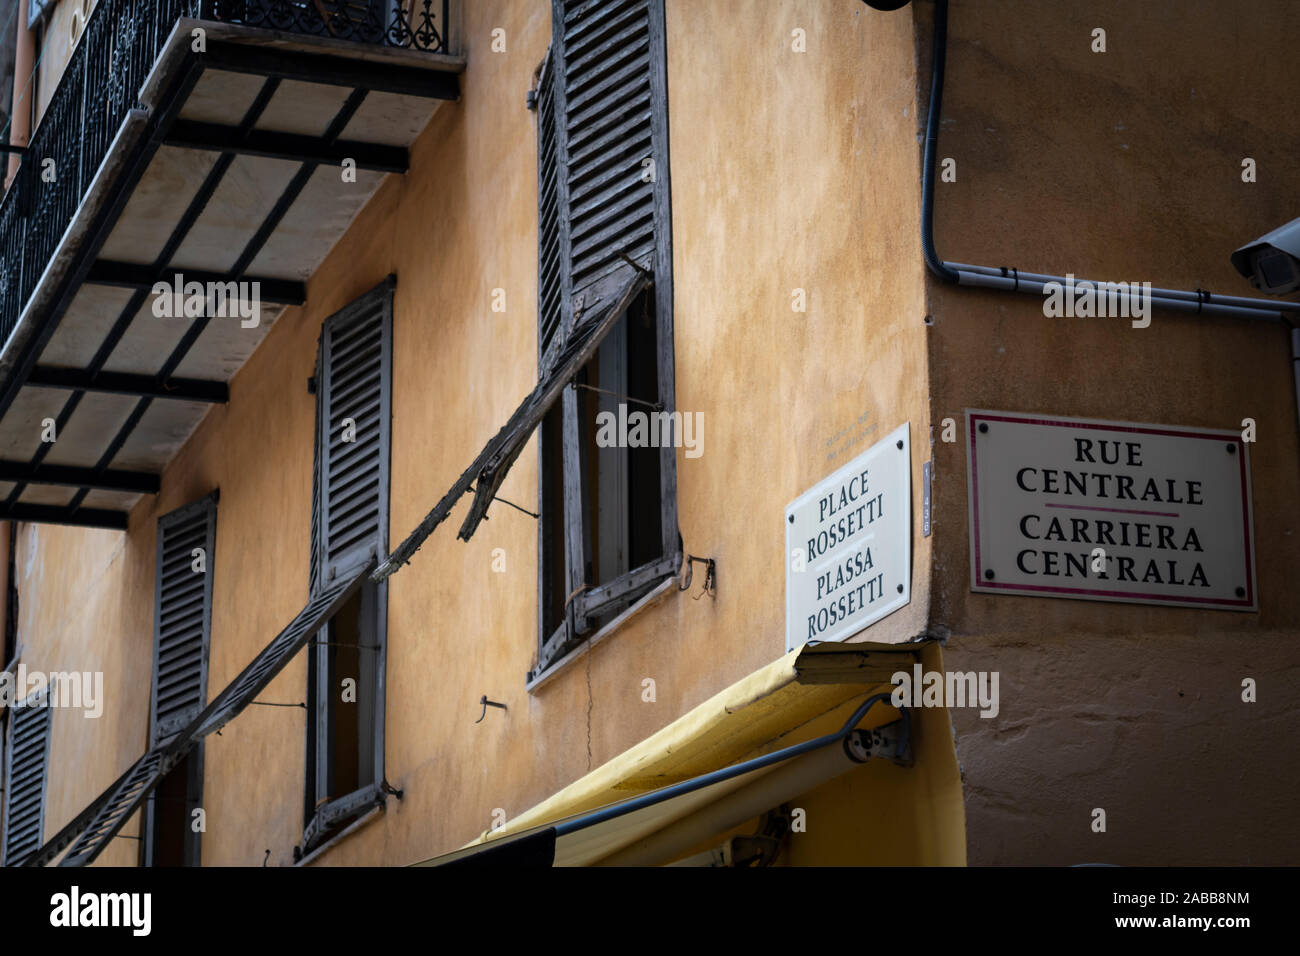 A street sign with the location and street near Place Rossetti piazza in the old town area of Nice, France. Stock Photo